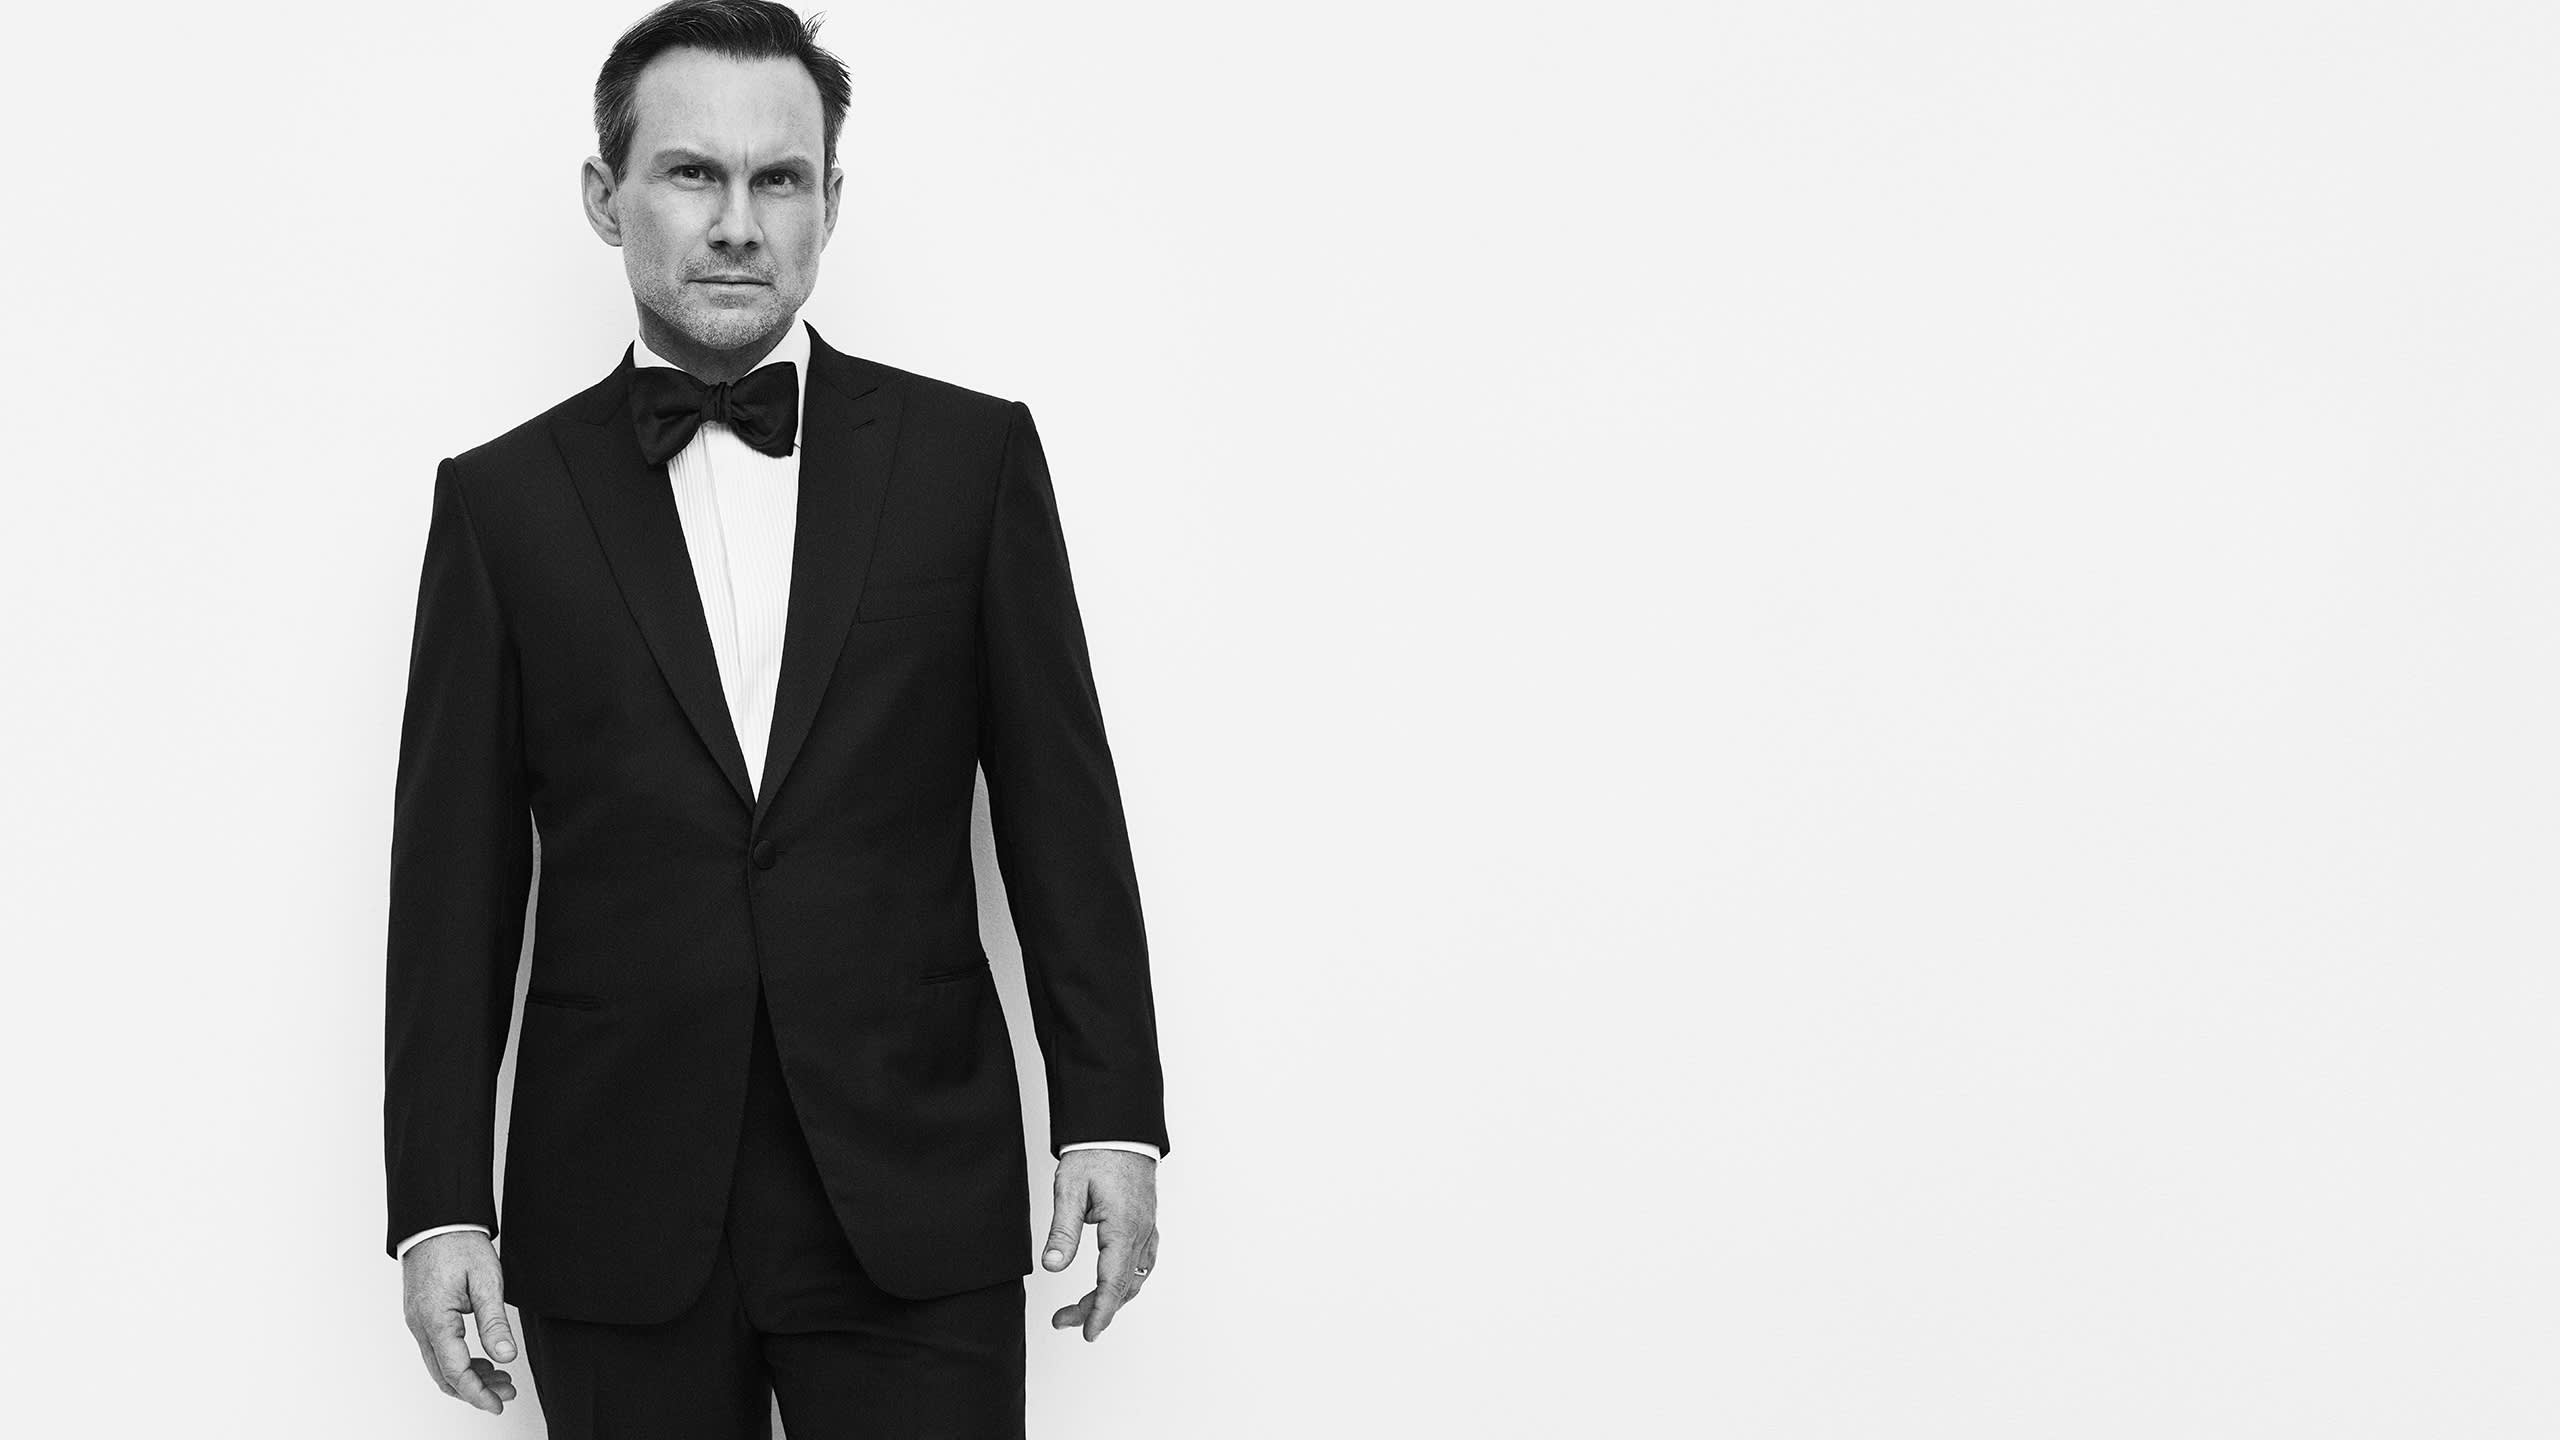 Christian Slater wearing a tuxedo, evening shirt and bow tie from the Brioni Essential collection